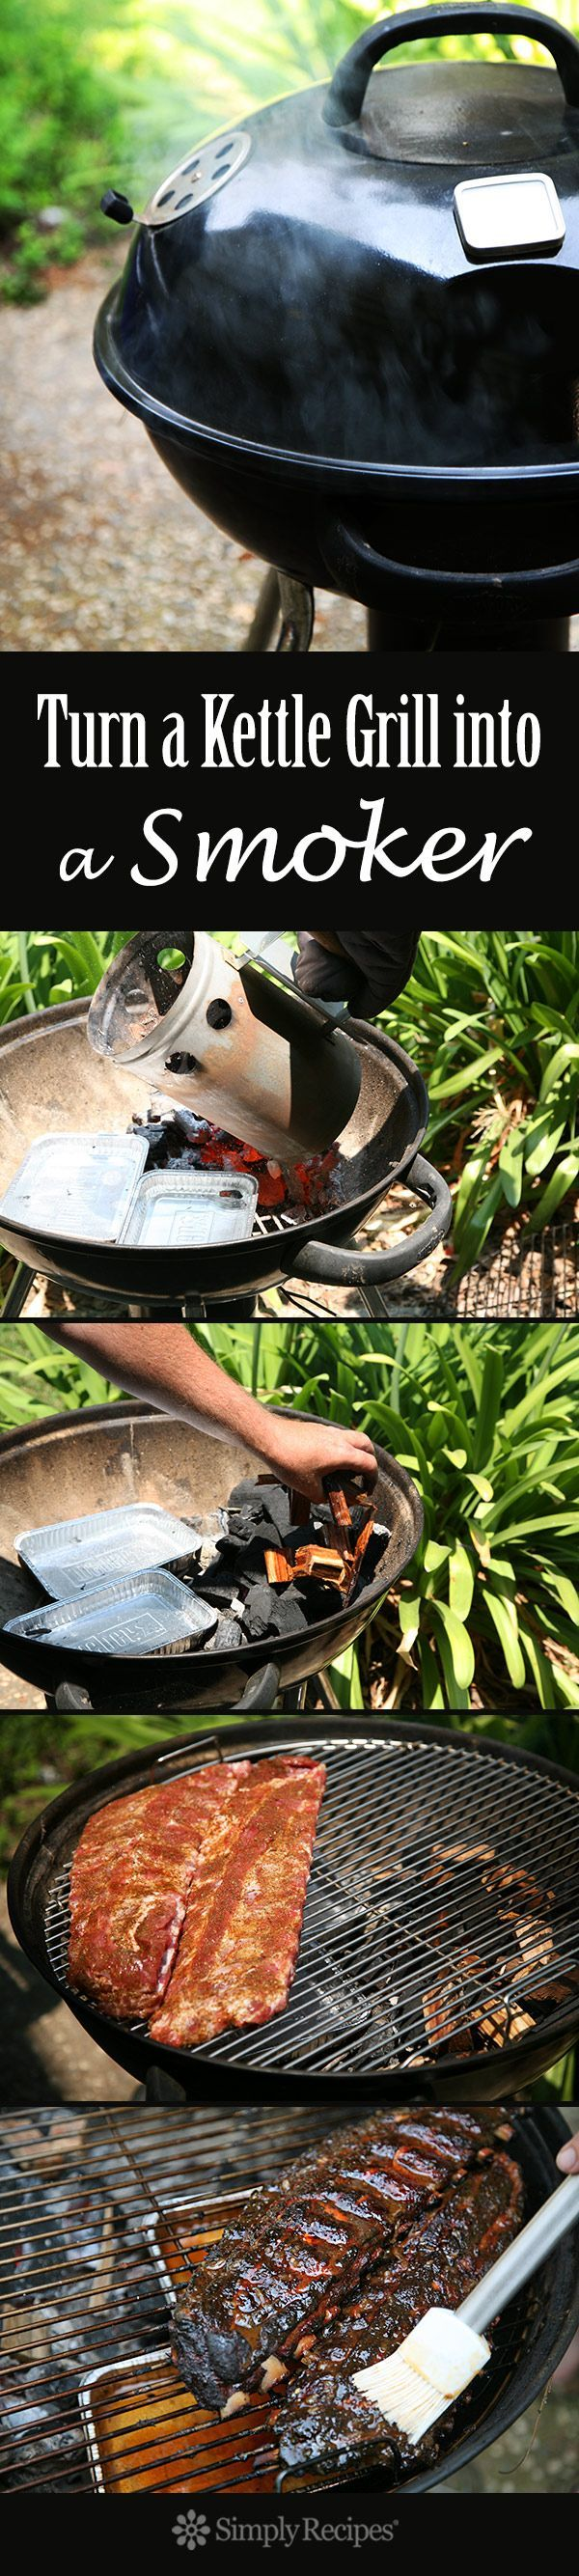 how to turn a bbq into a smoker